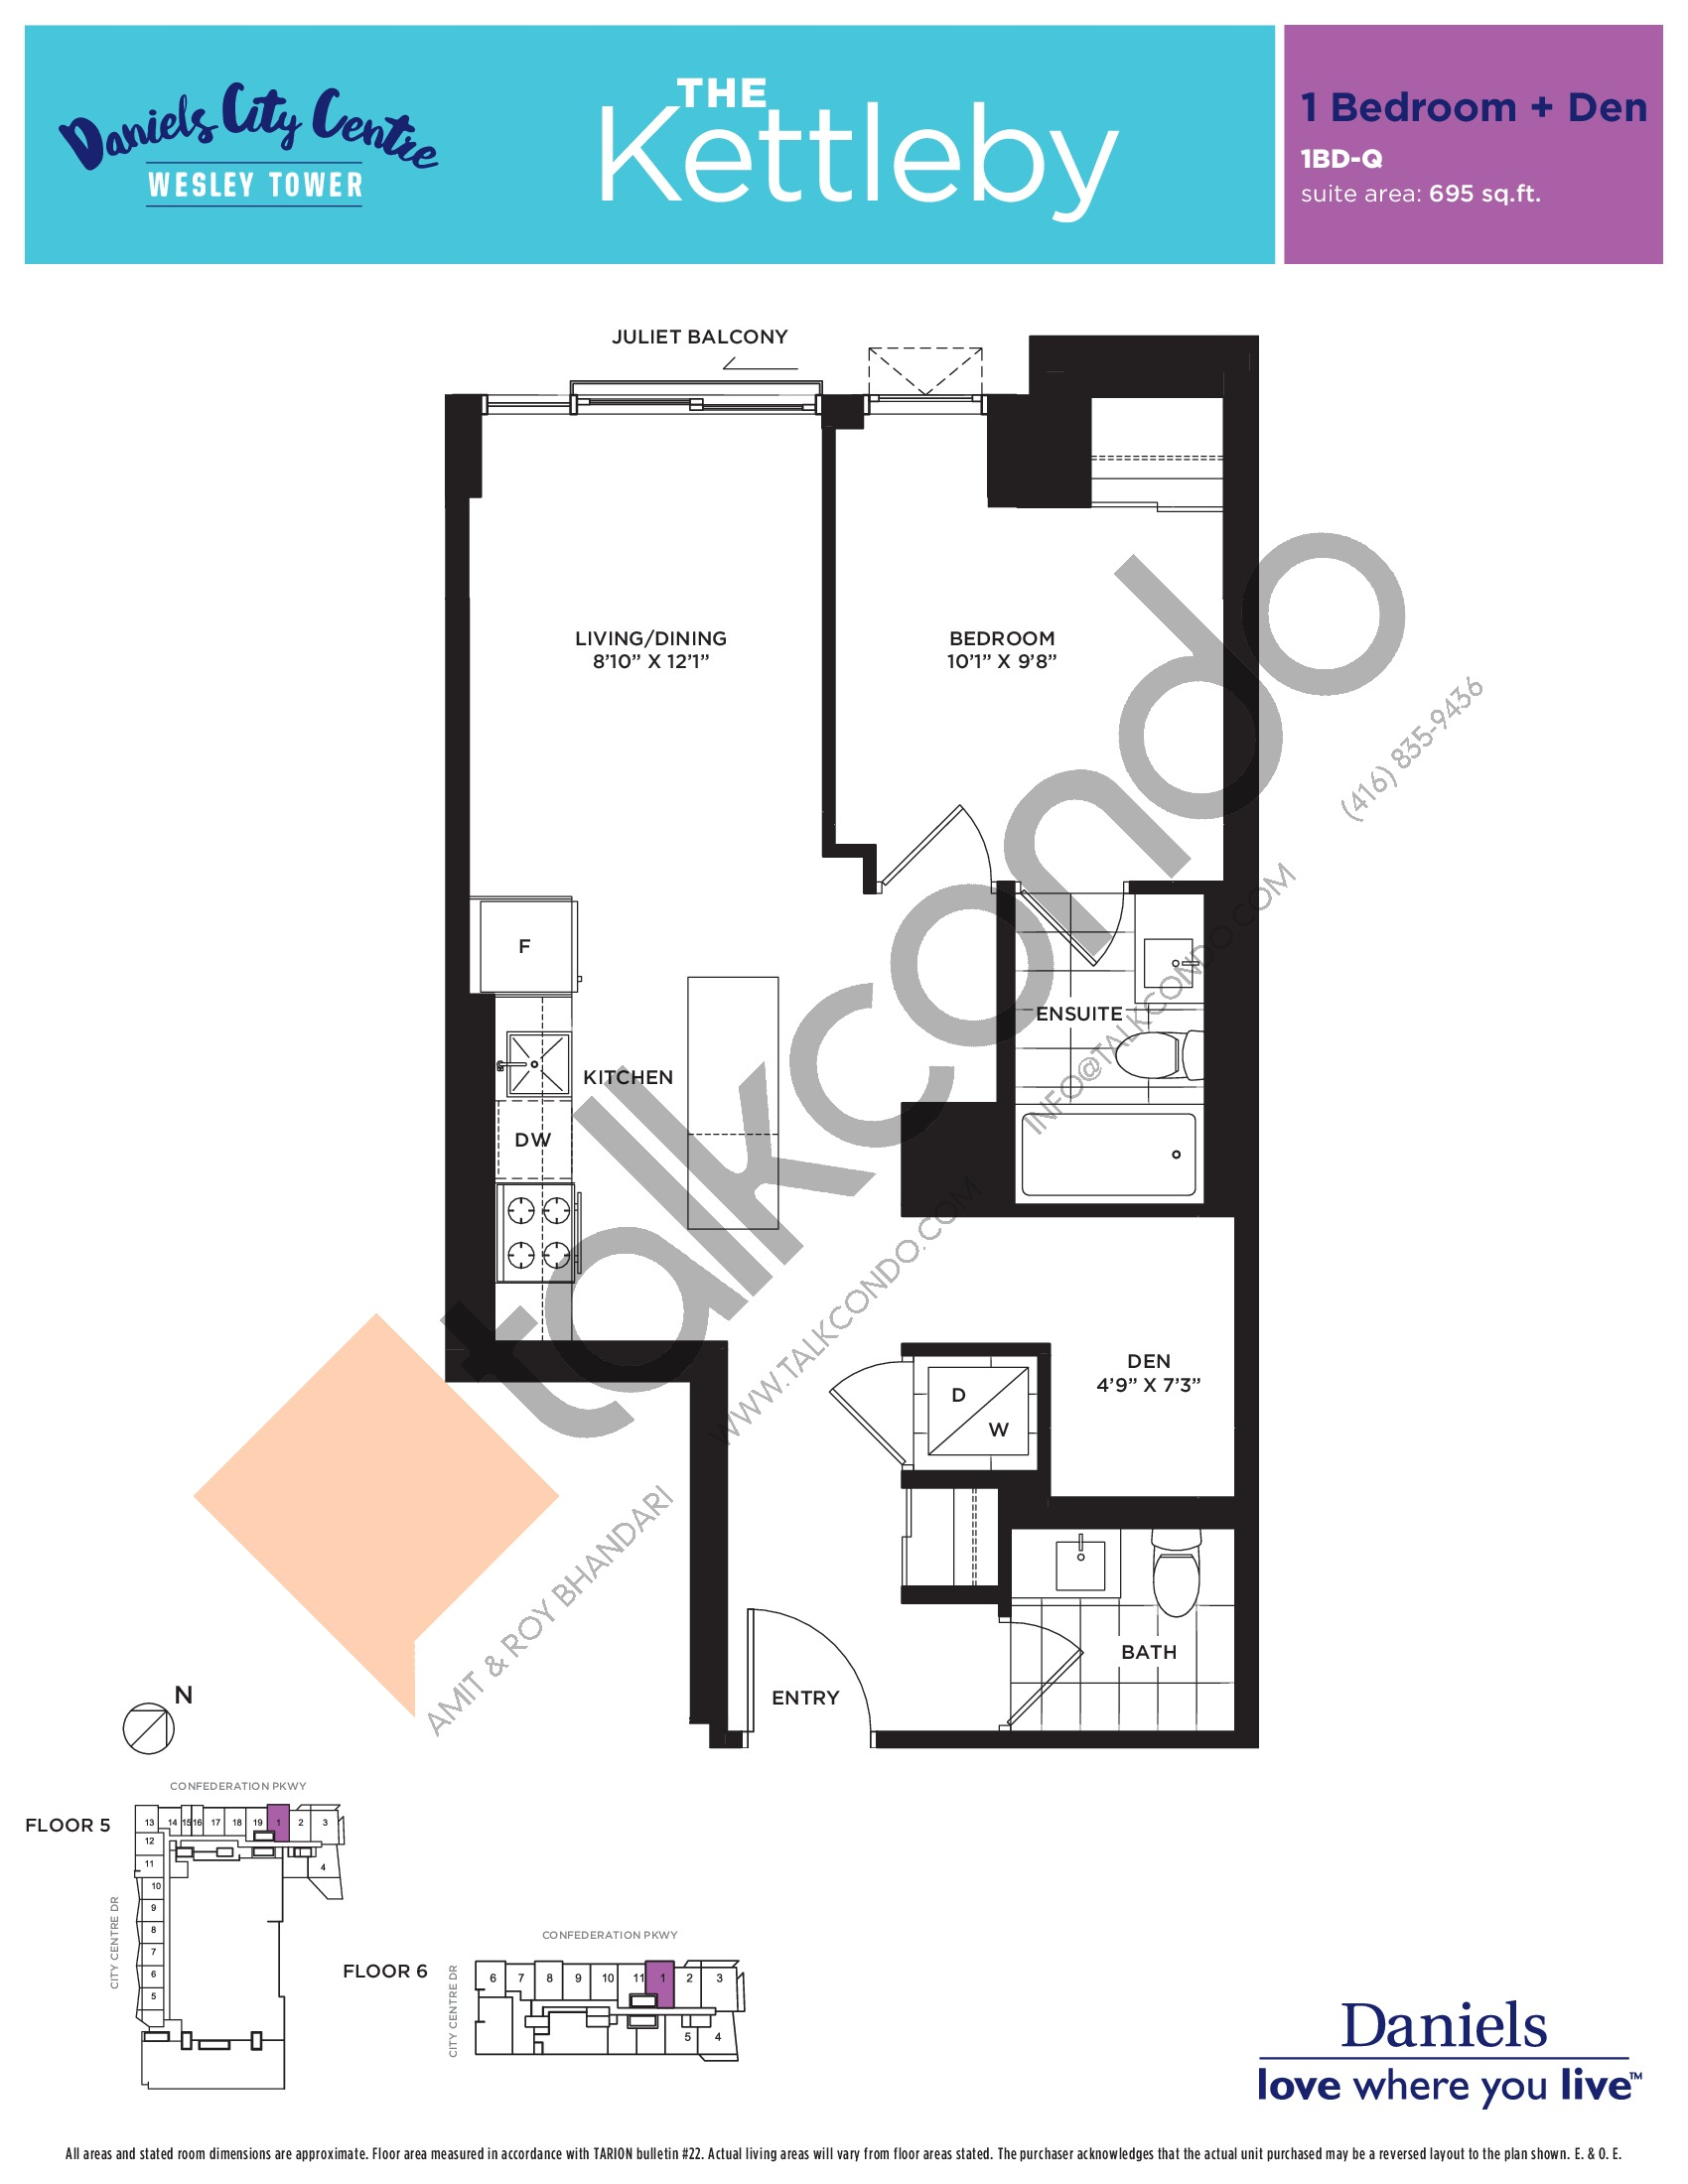 The Kettleby Floor Plan at The Wesley Tower at Daniels City Centre Condos - 695 sq.ft